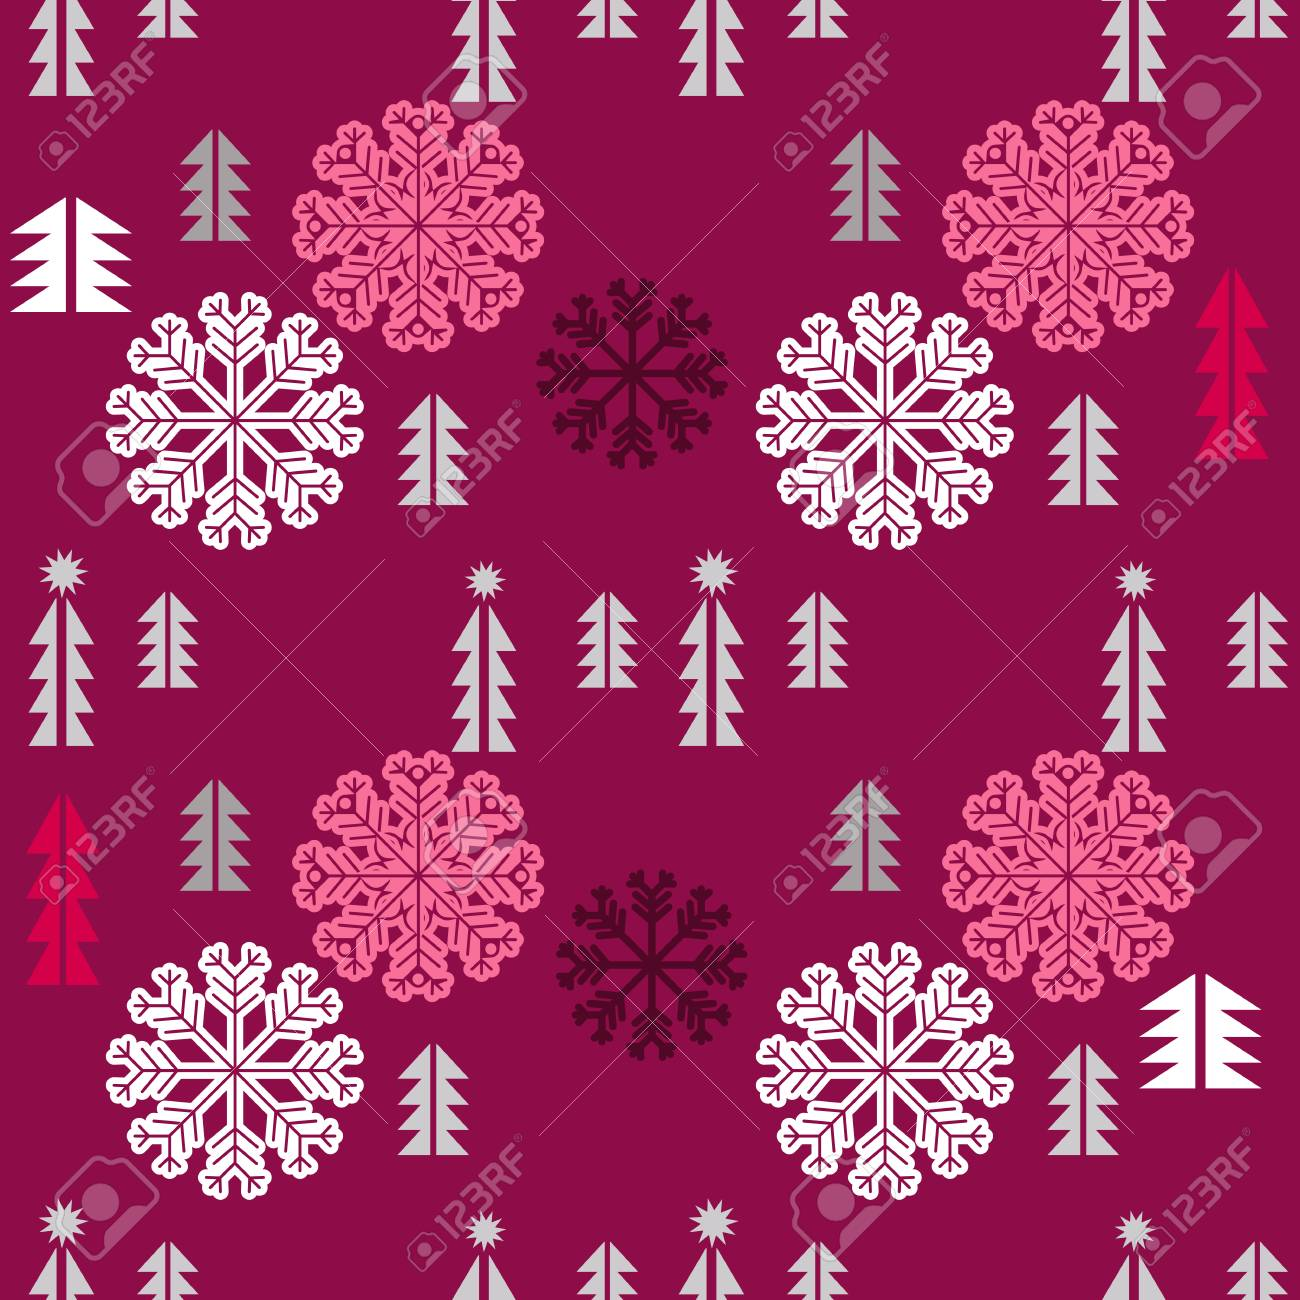 Christmas Seamless Pattern With Snowflakes Unique Christmas